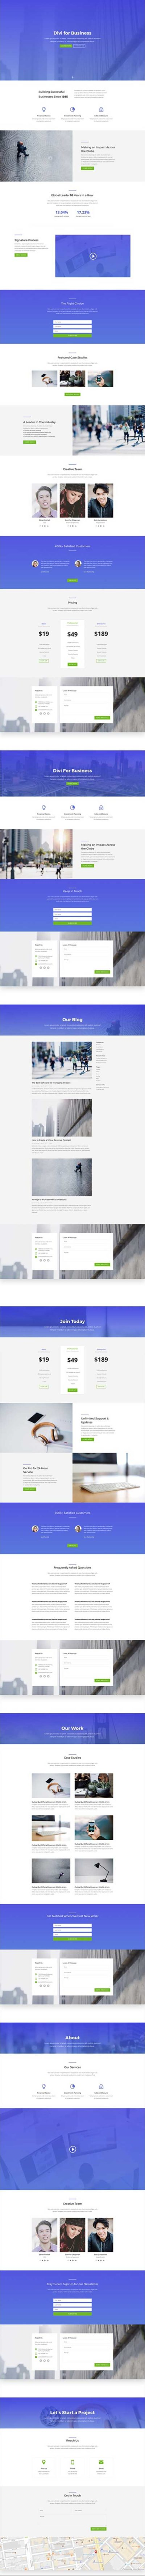 free divi layout for business website